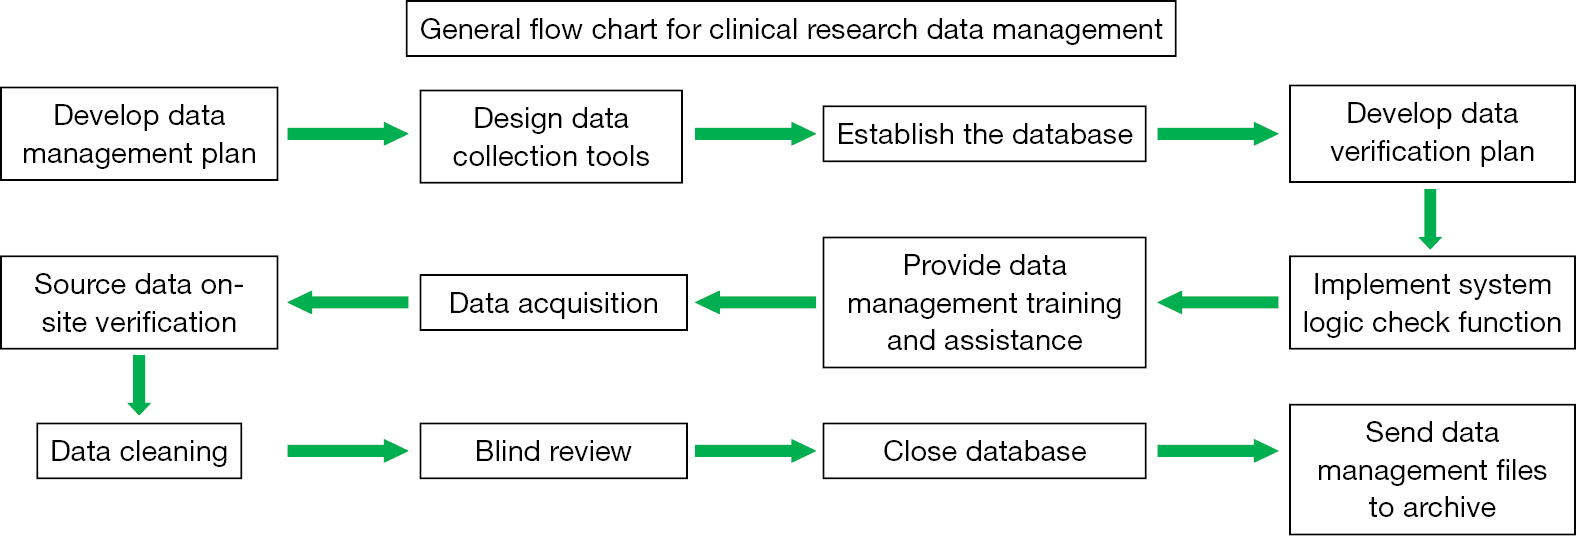 Construction of databases advances and significance in clinical databases for clinical research data management definitions and types of database and key factors for their constructionother section geenschuldenfo Gallery